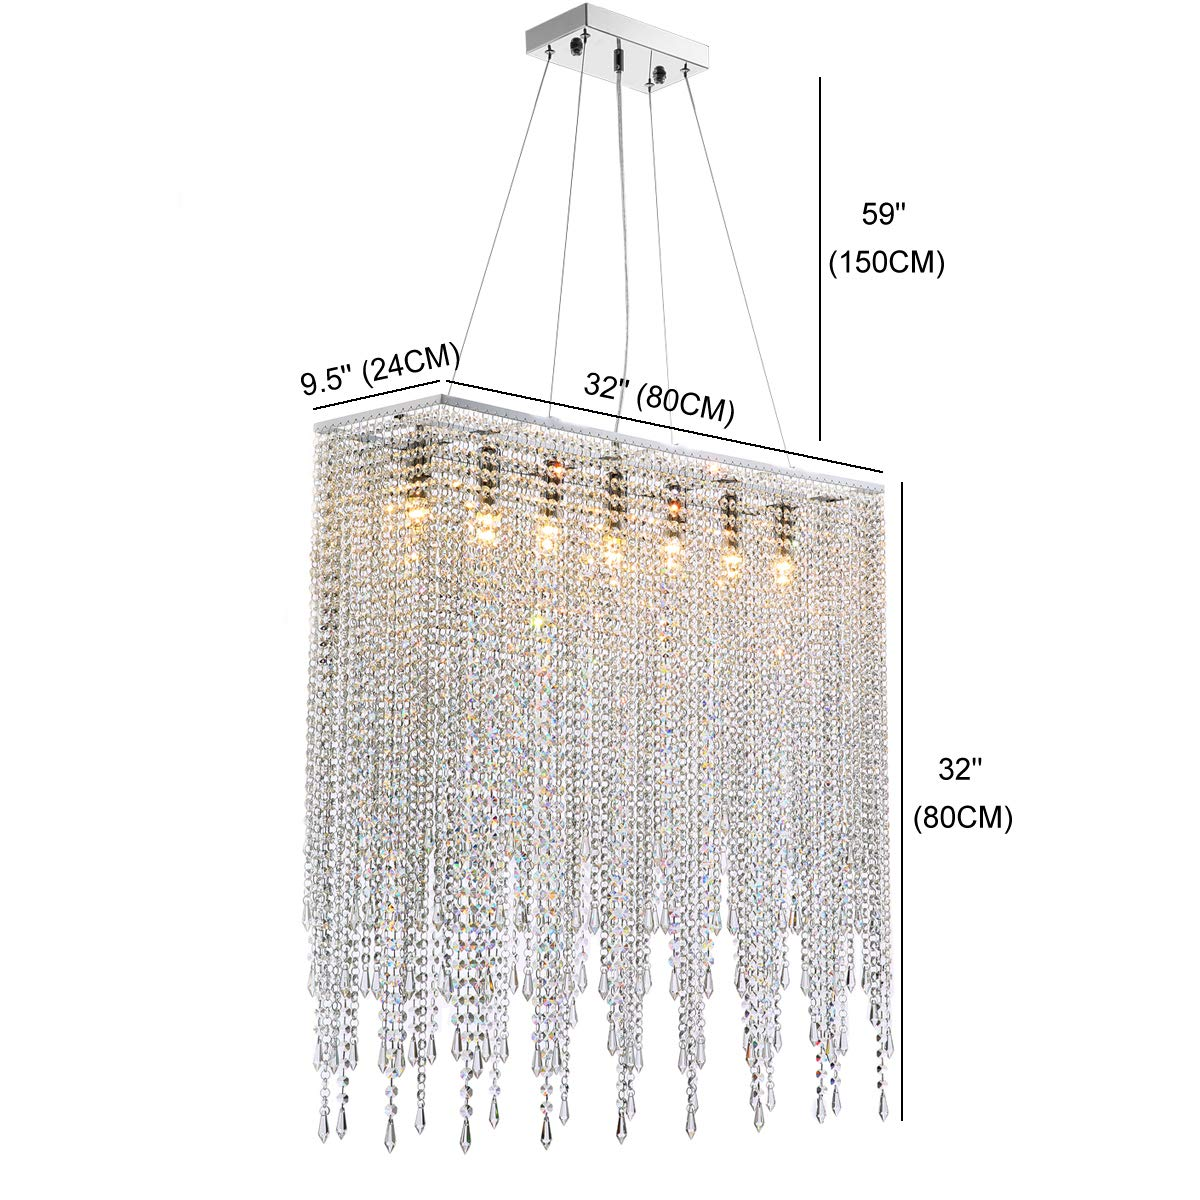 "7PM Modern Rectangle Island Crystal Chandelier Pendant Lamp Light Fixture 7 Lights Required for Dining Room Kitchen Flush Mount L32"" x W9.5"" x H32"""